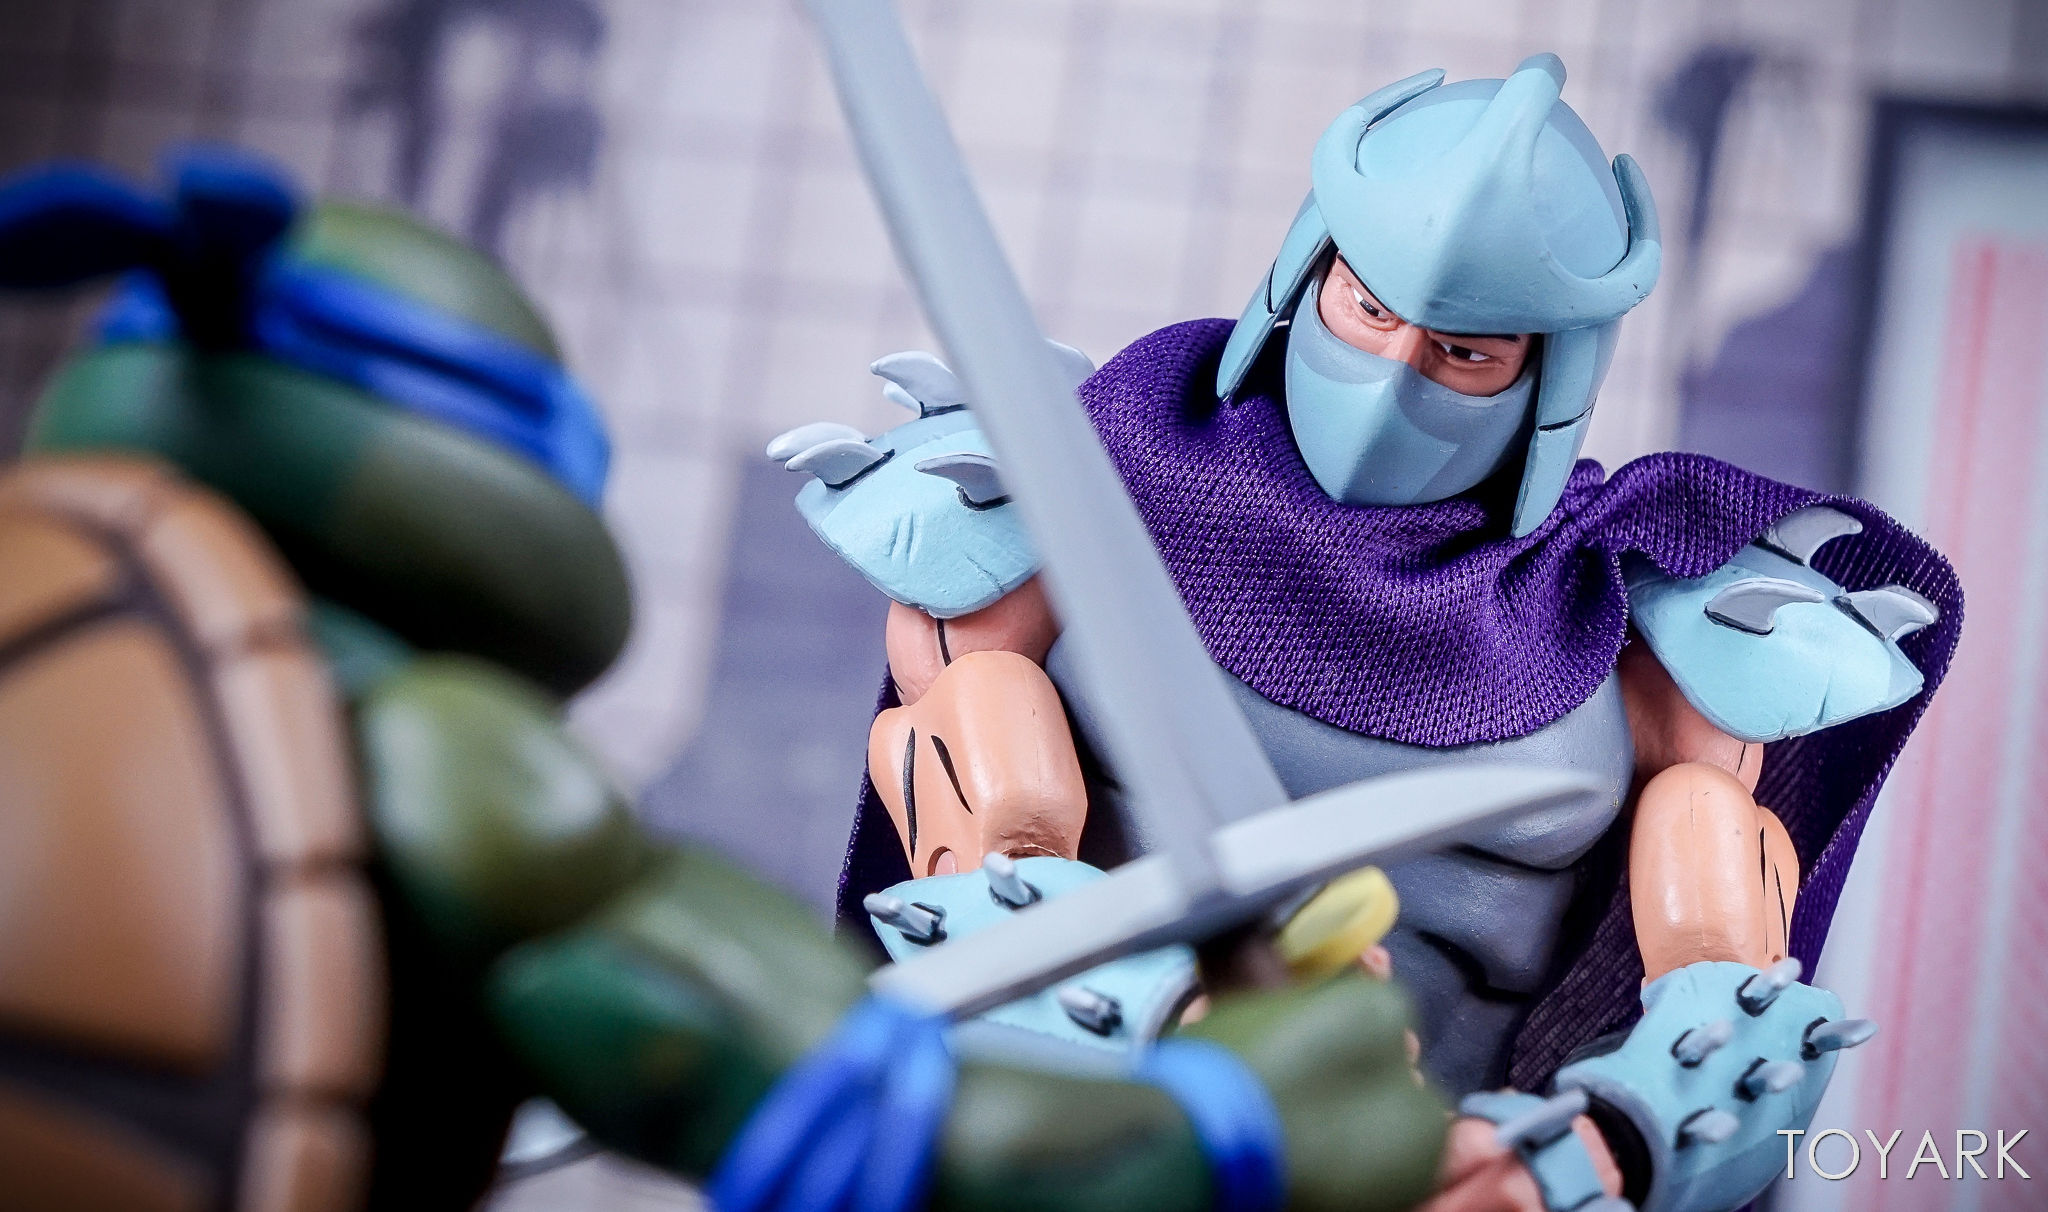 http://news.toyark.com/wp-content/uploads/sites/4/2017/07/NECA-SDCC-2017-Toon-TMNT-073.jpg